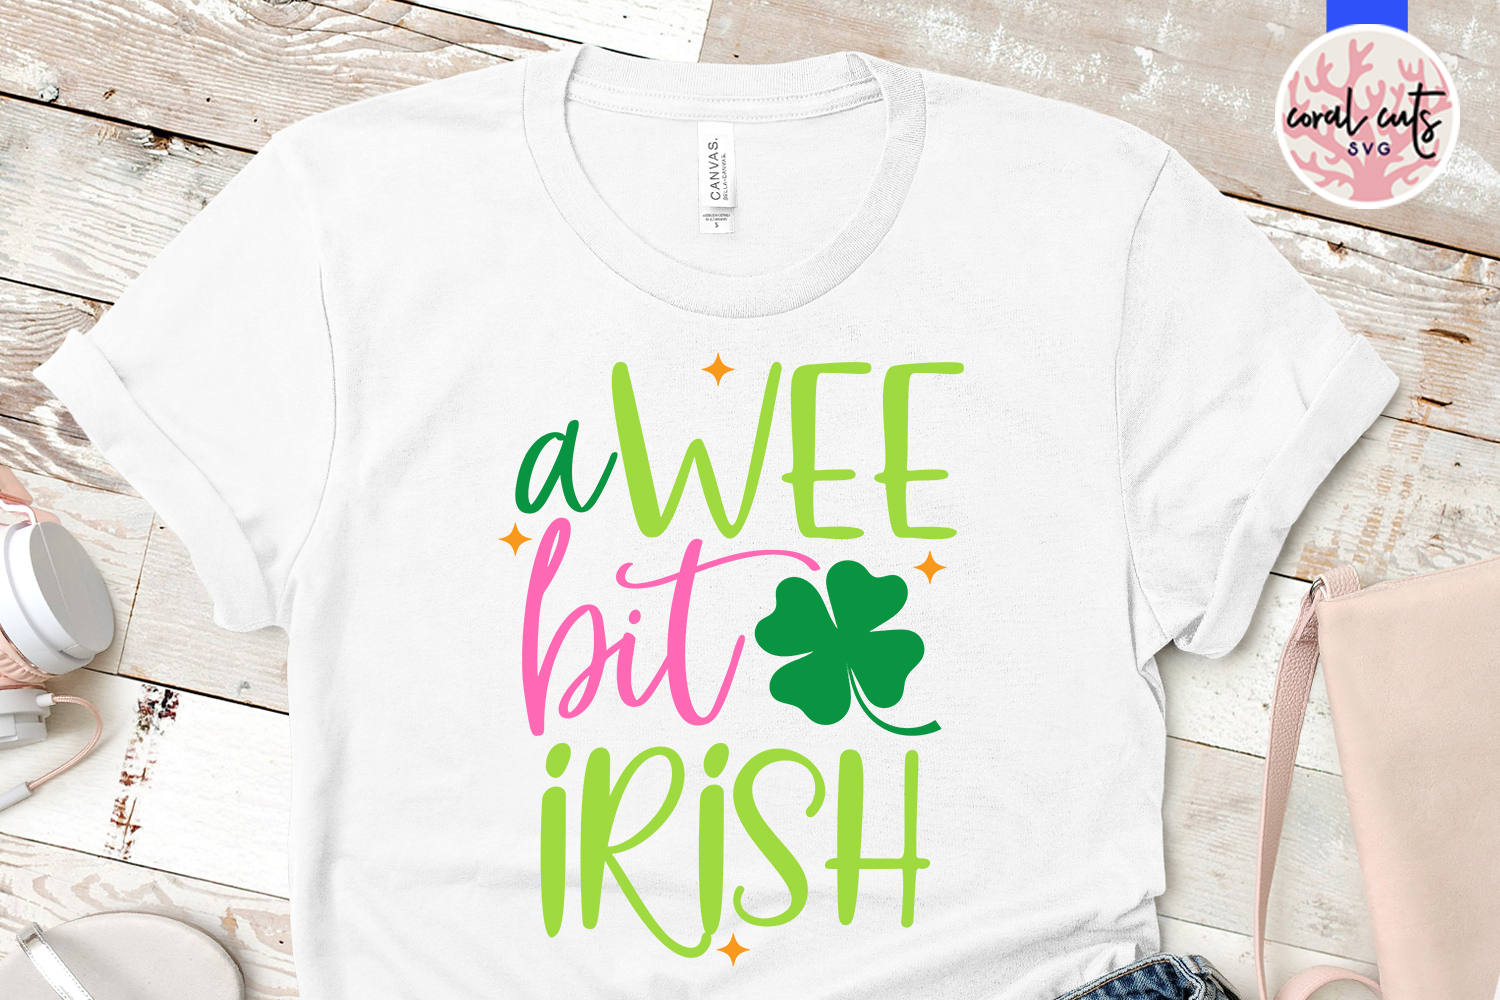 A wee bit irish - St. Patrick's Day SVG EPS DXF PNG example image 2